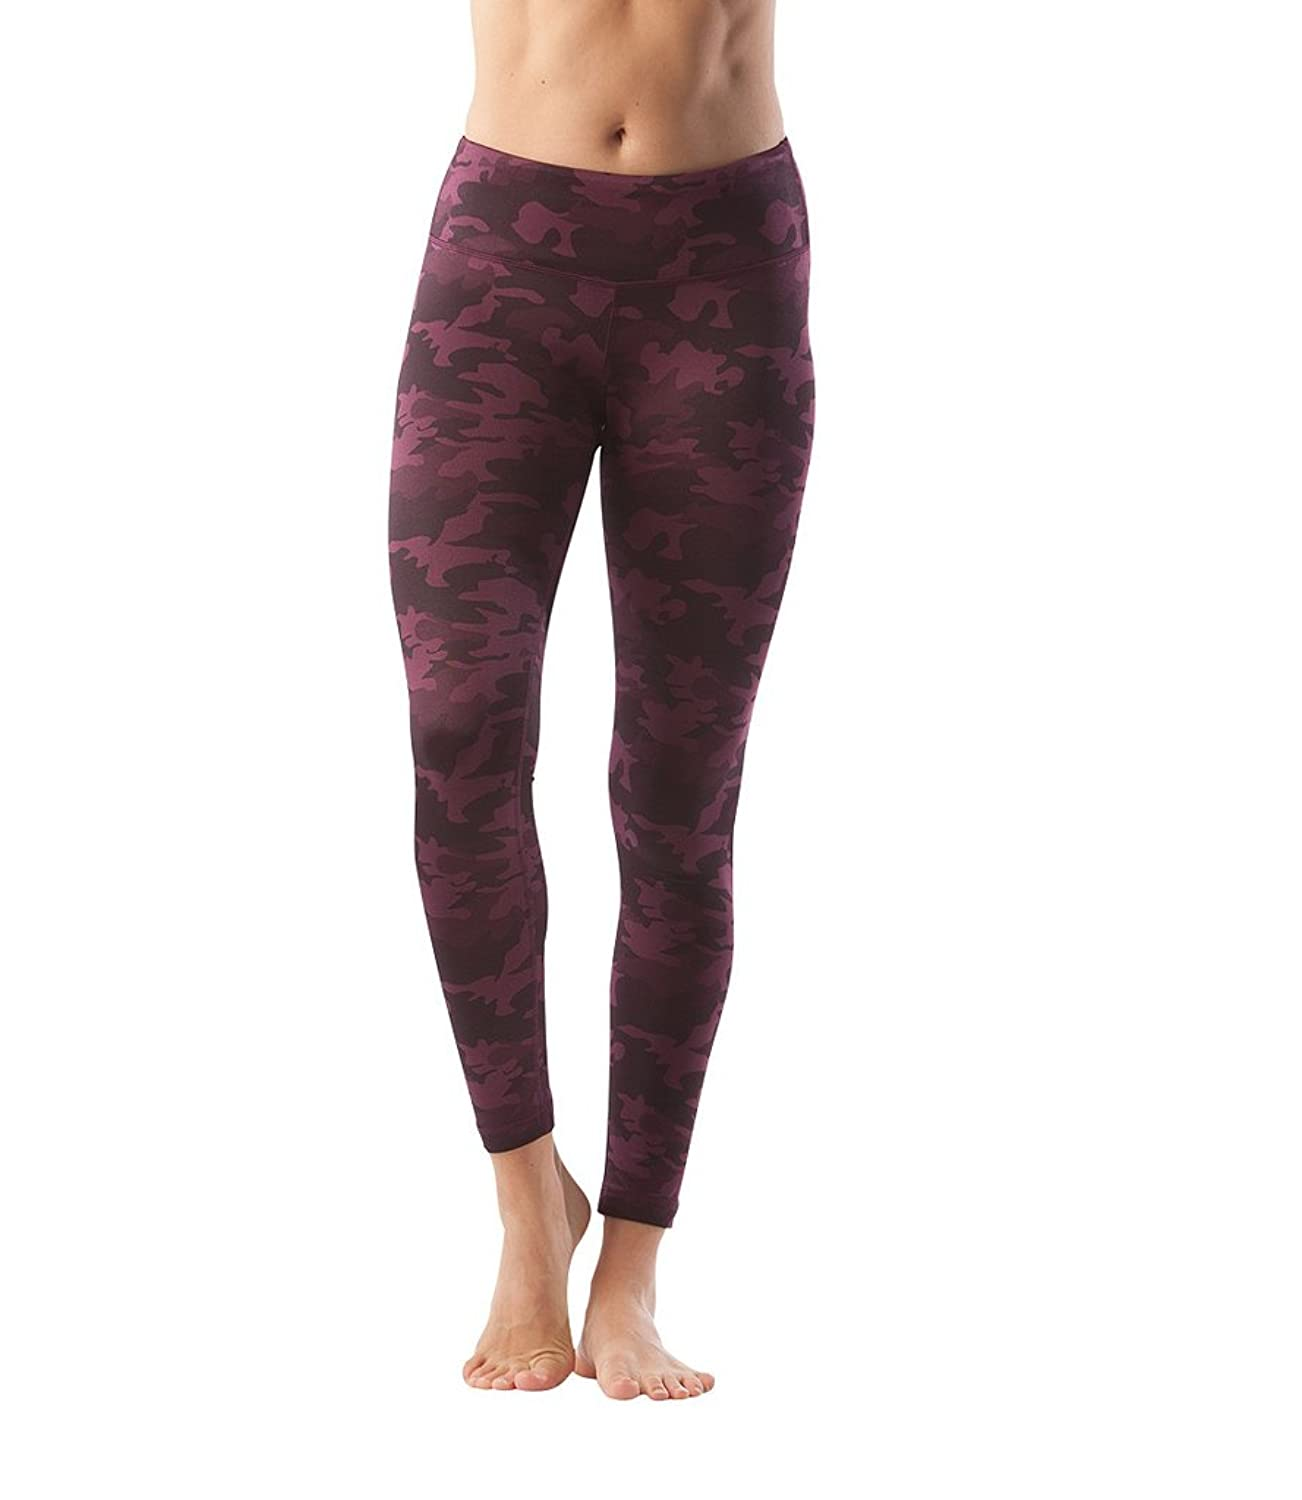 45439a2997 Full length activewear printed legging - feels as good as it looks! All  over five-lock stitching + gusset crotch. Approximate 28